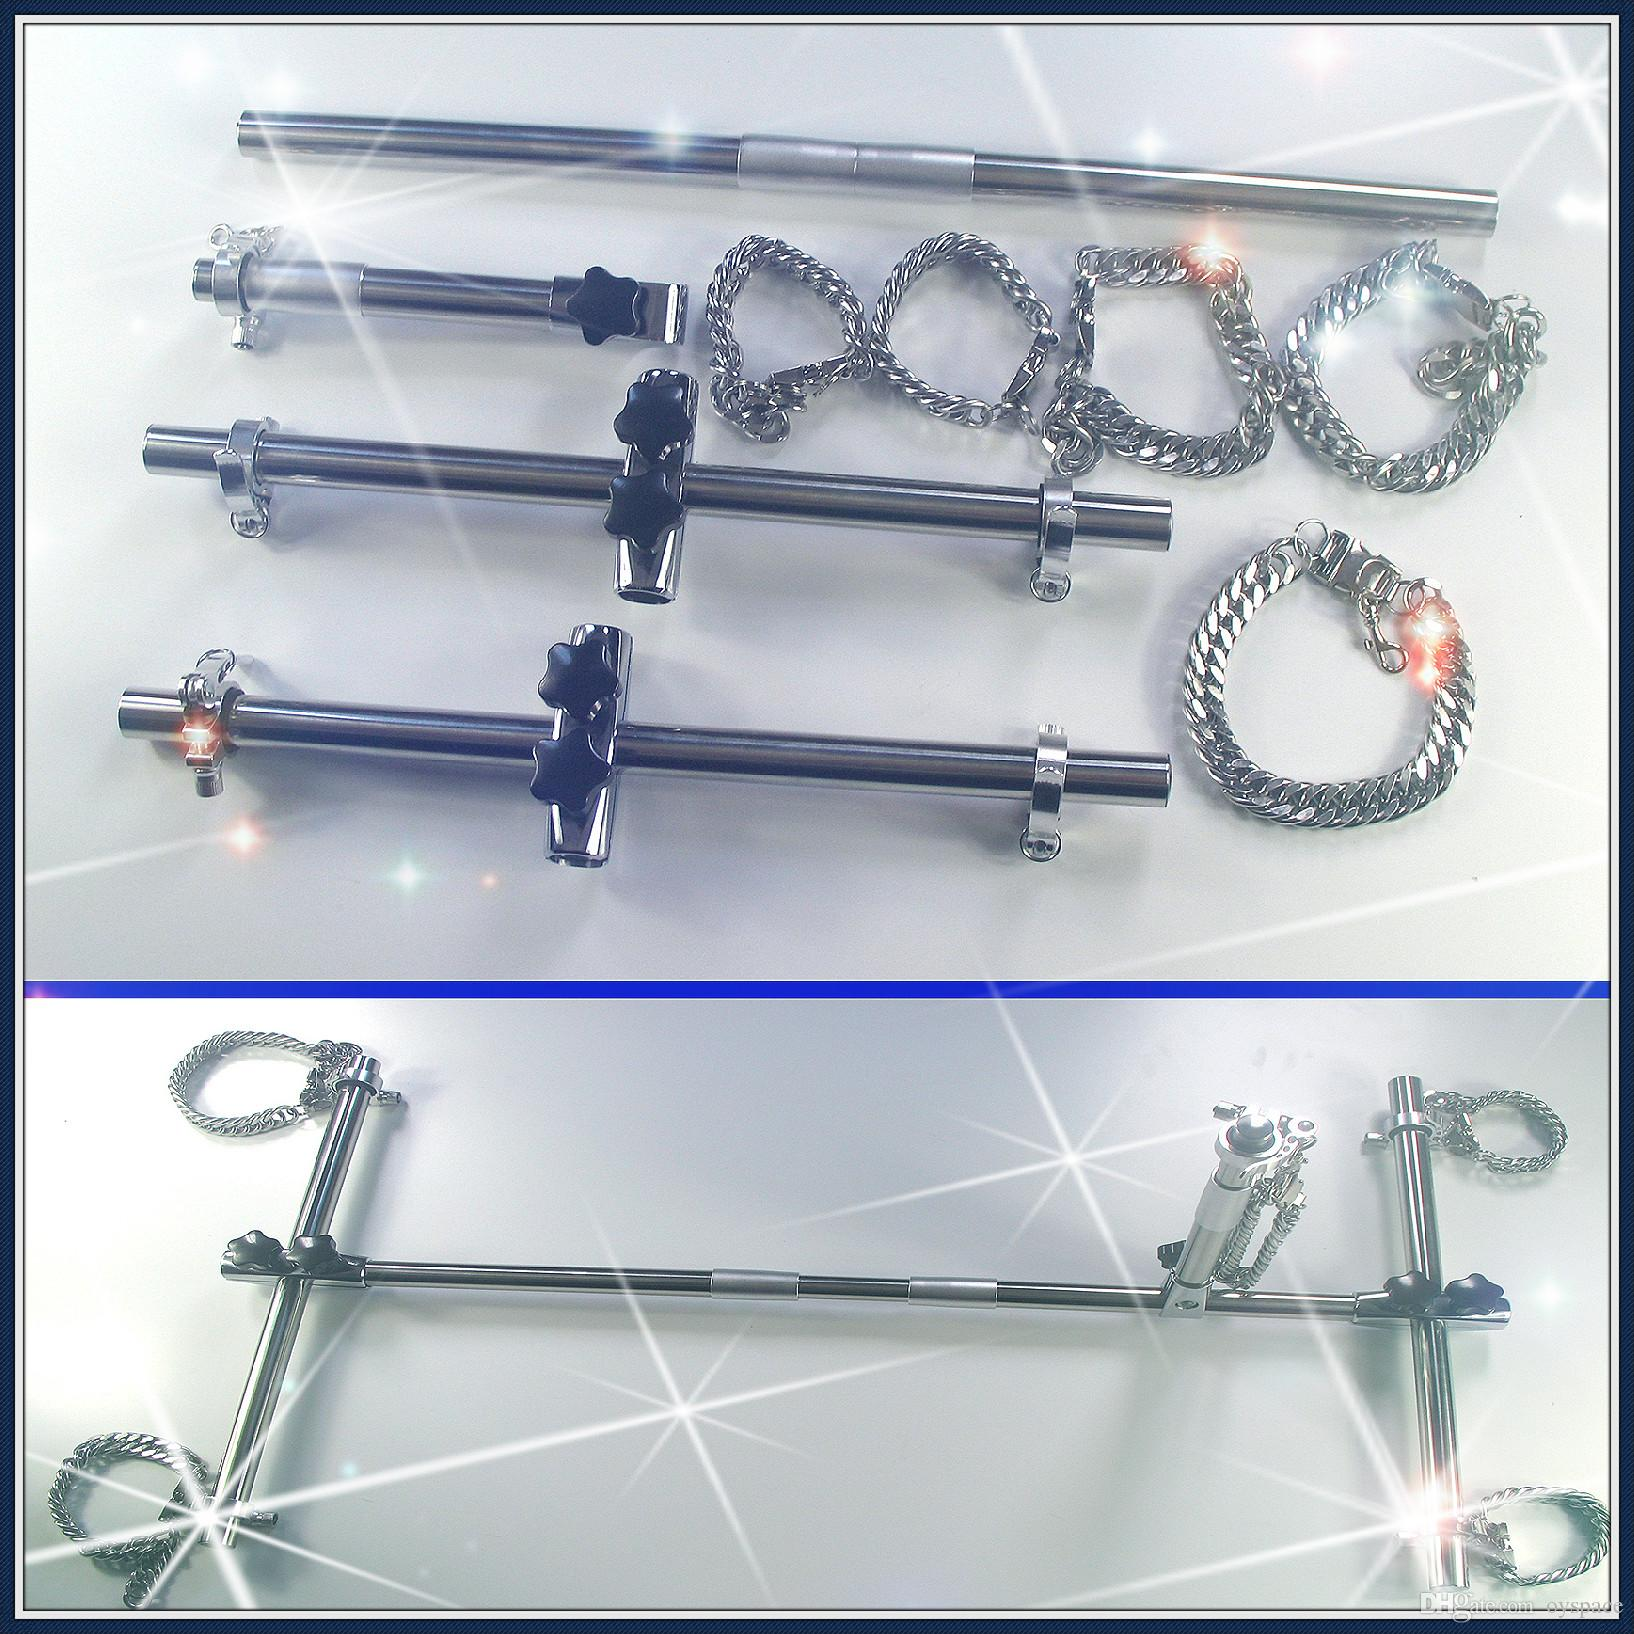 Portable Bondage Trainong Device With Stainless Steel Cuffs And Collar Stainless Steel Bondage